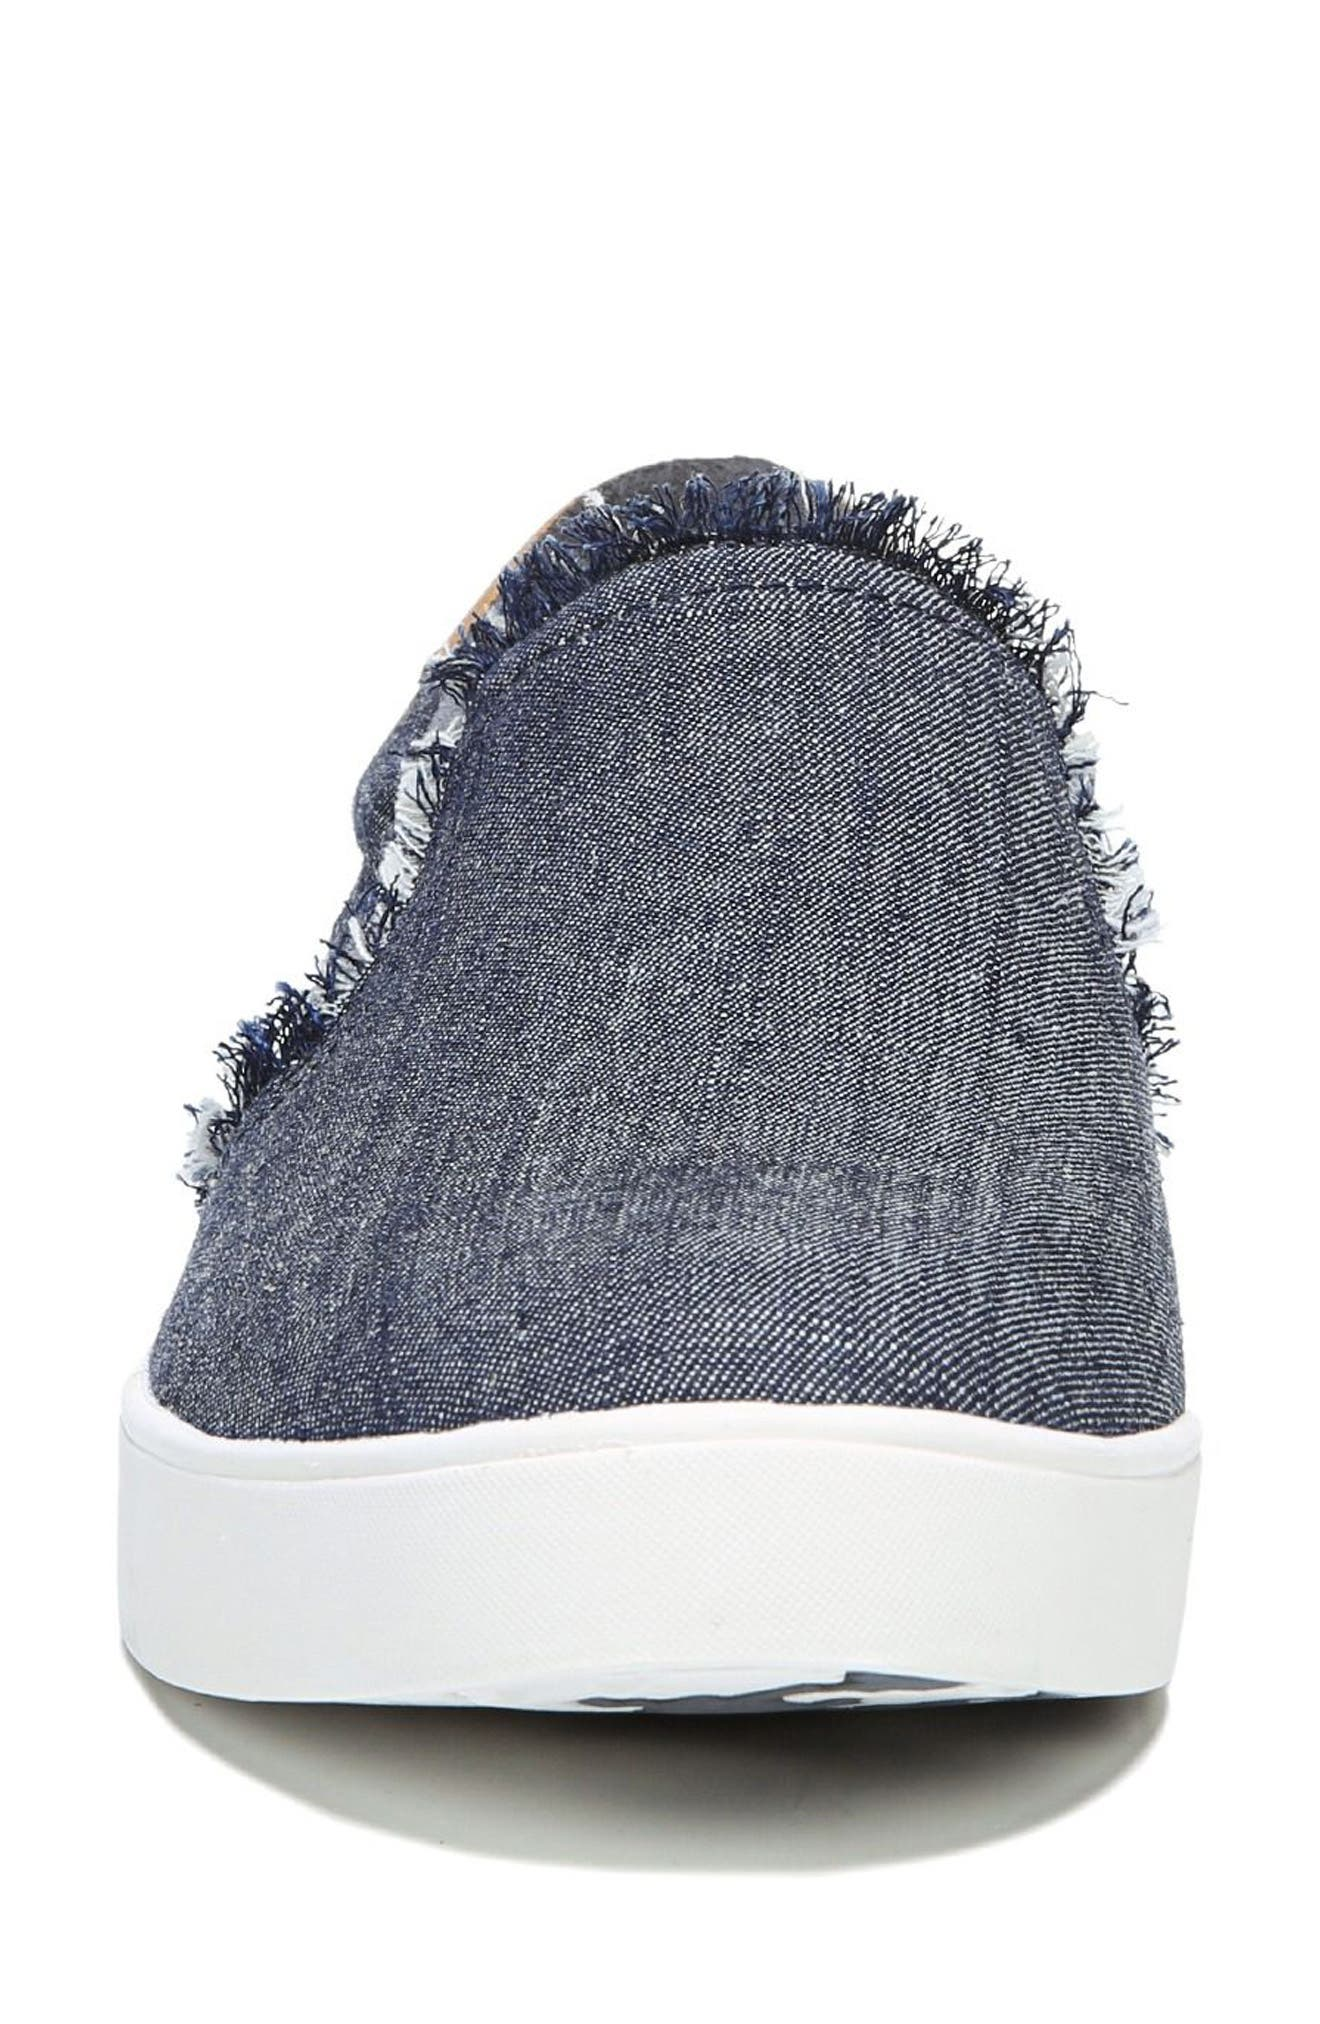 Scout Fray Slip-on Sneaker,                             Alternate thumbnail 4, color,                             Denim Fabric